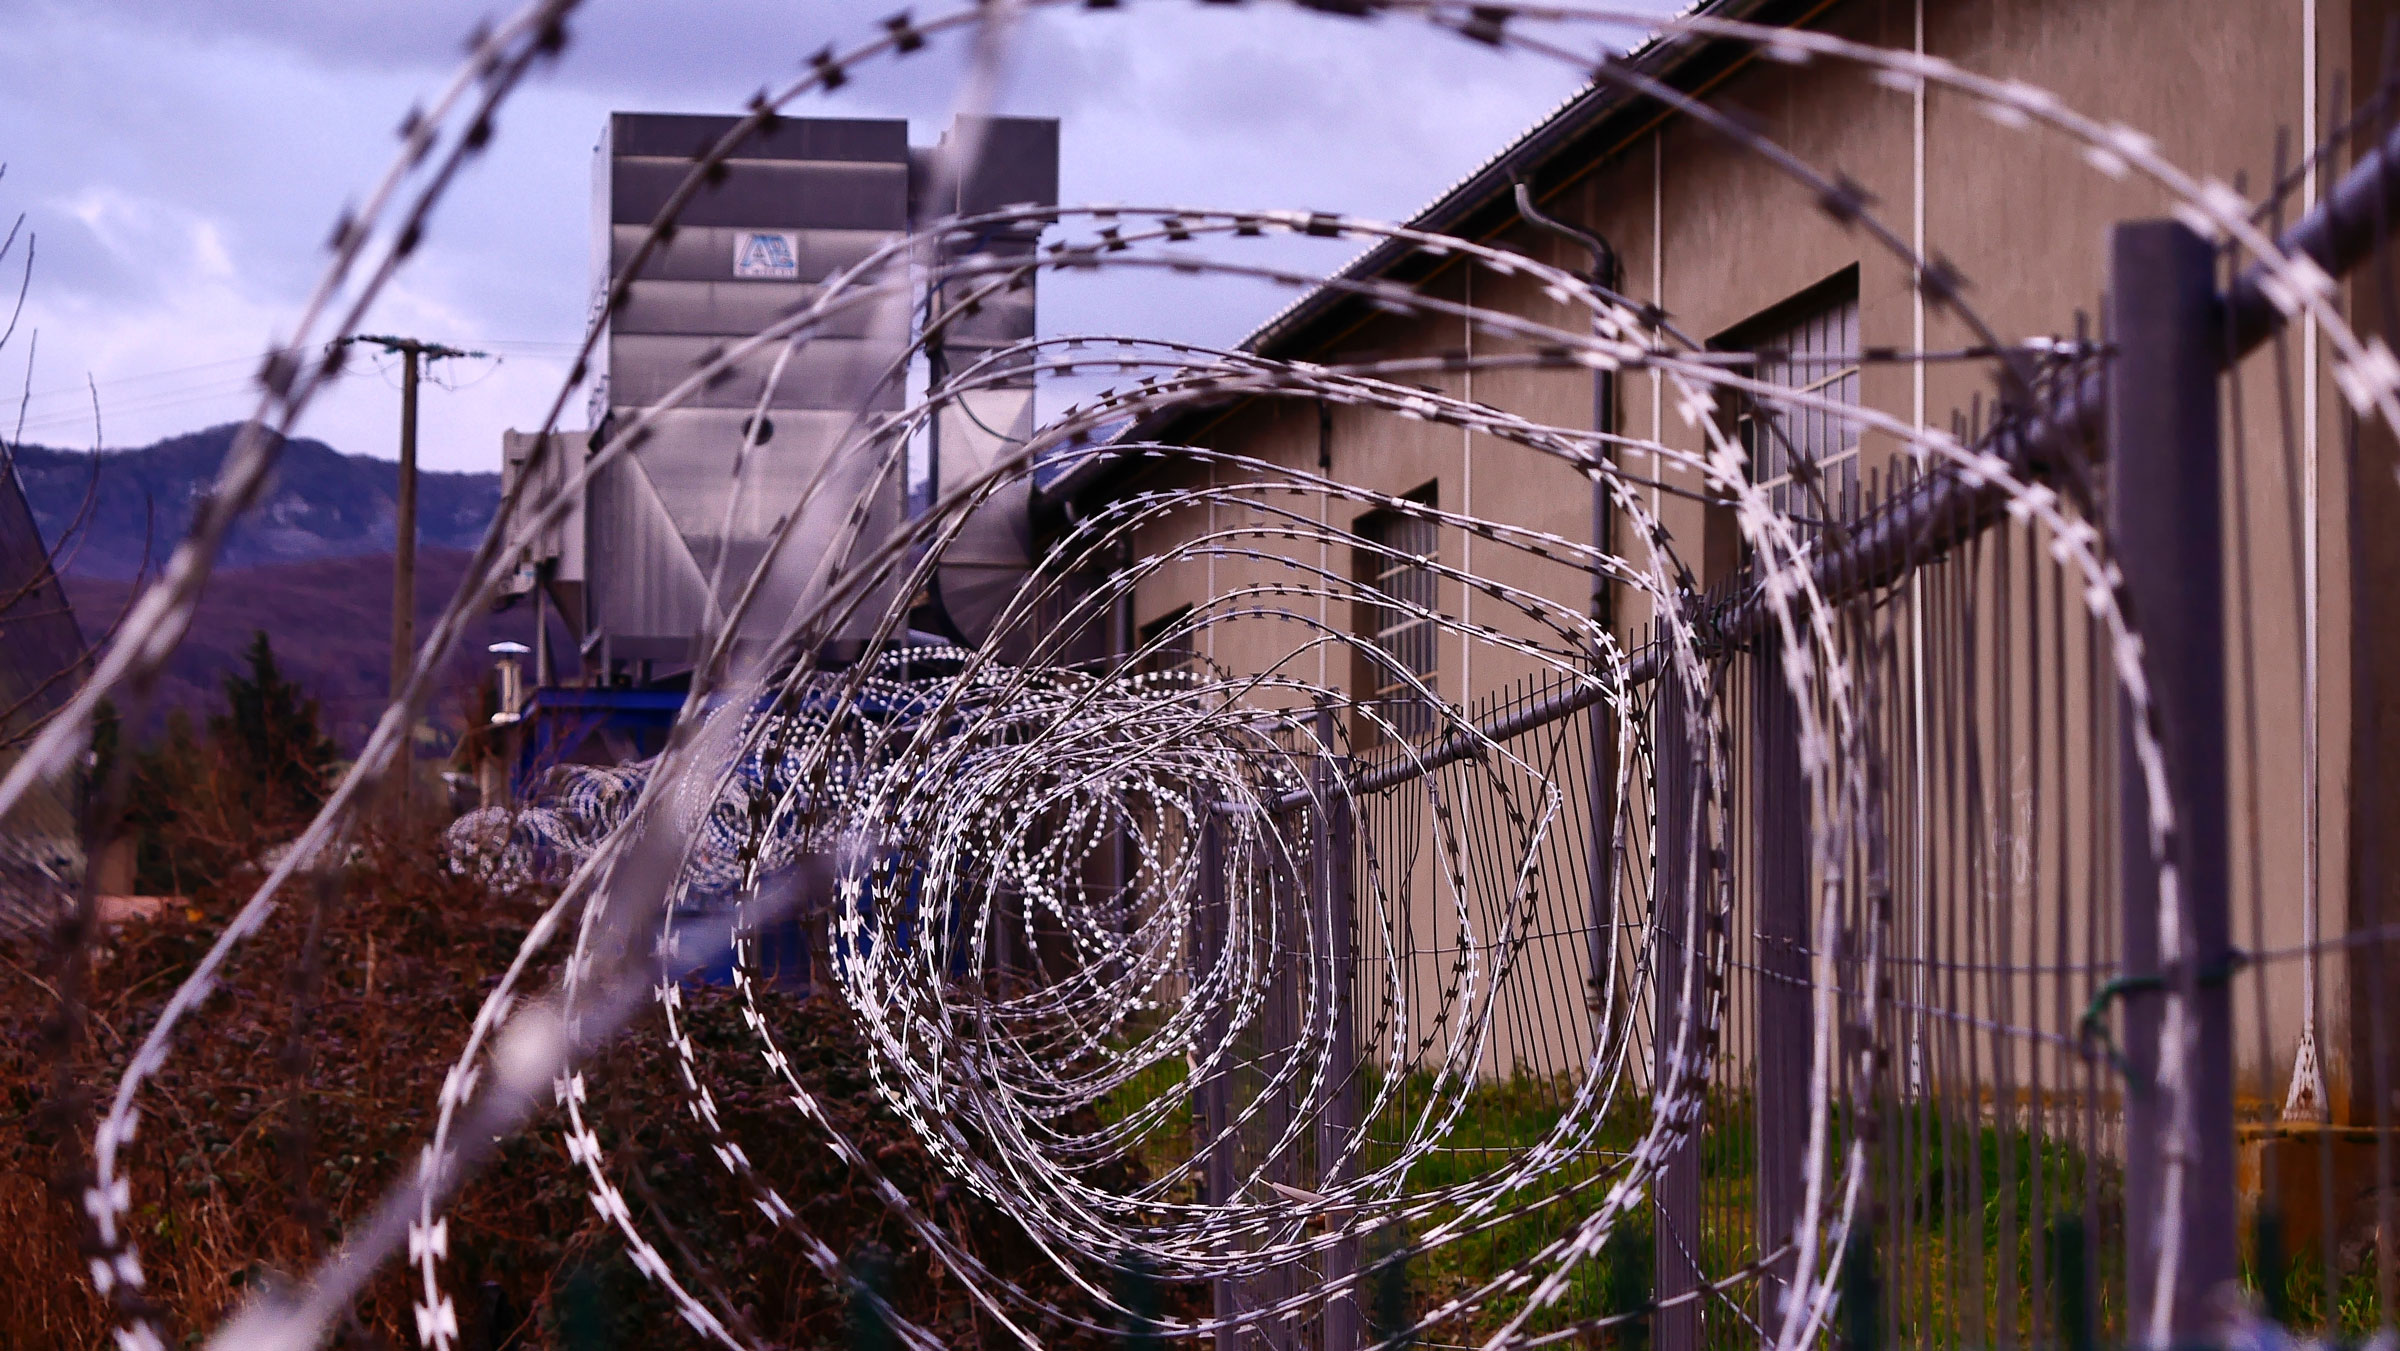 Barbed wire separates a prison wall from nature